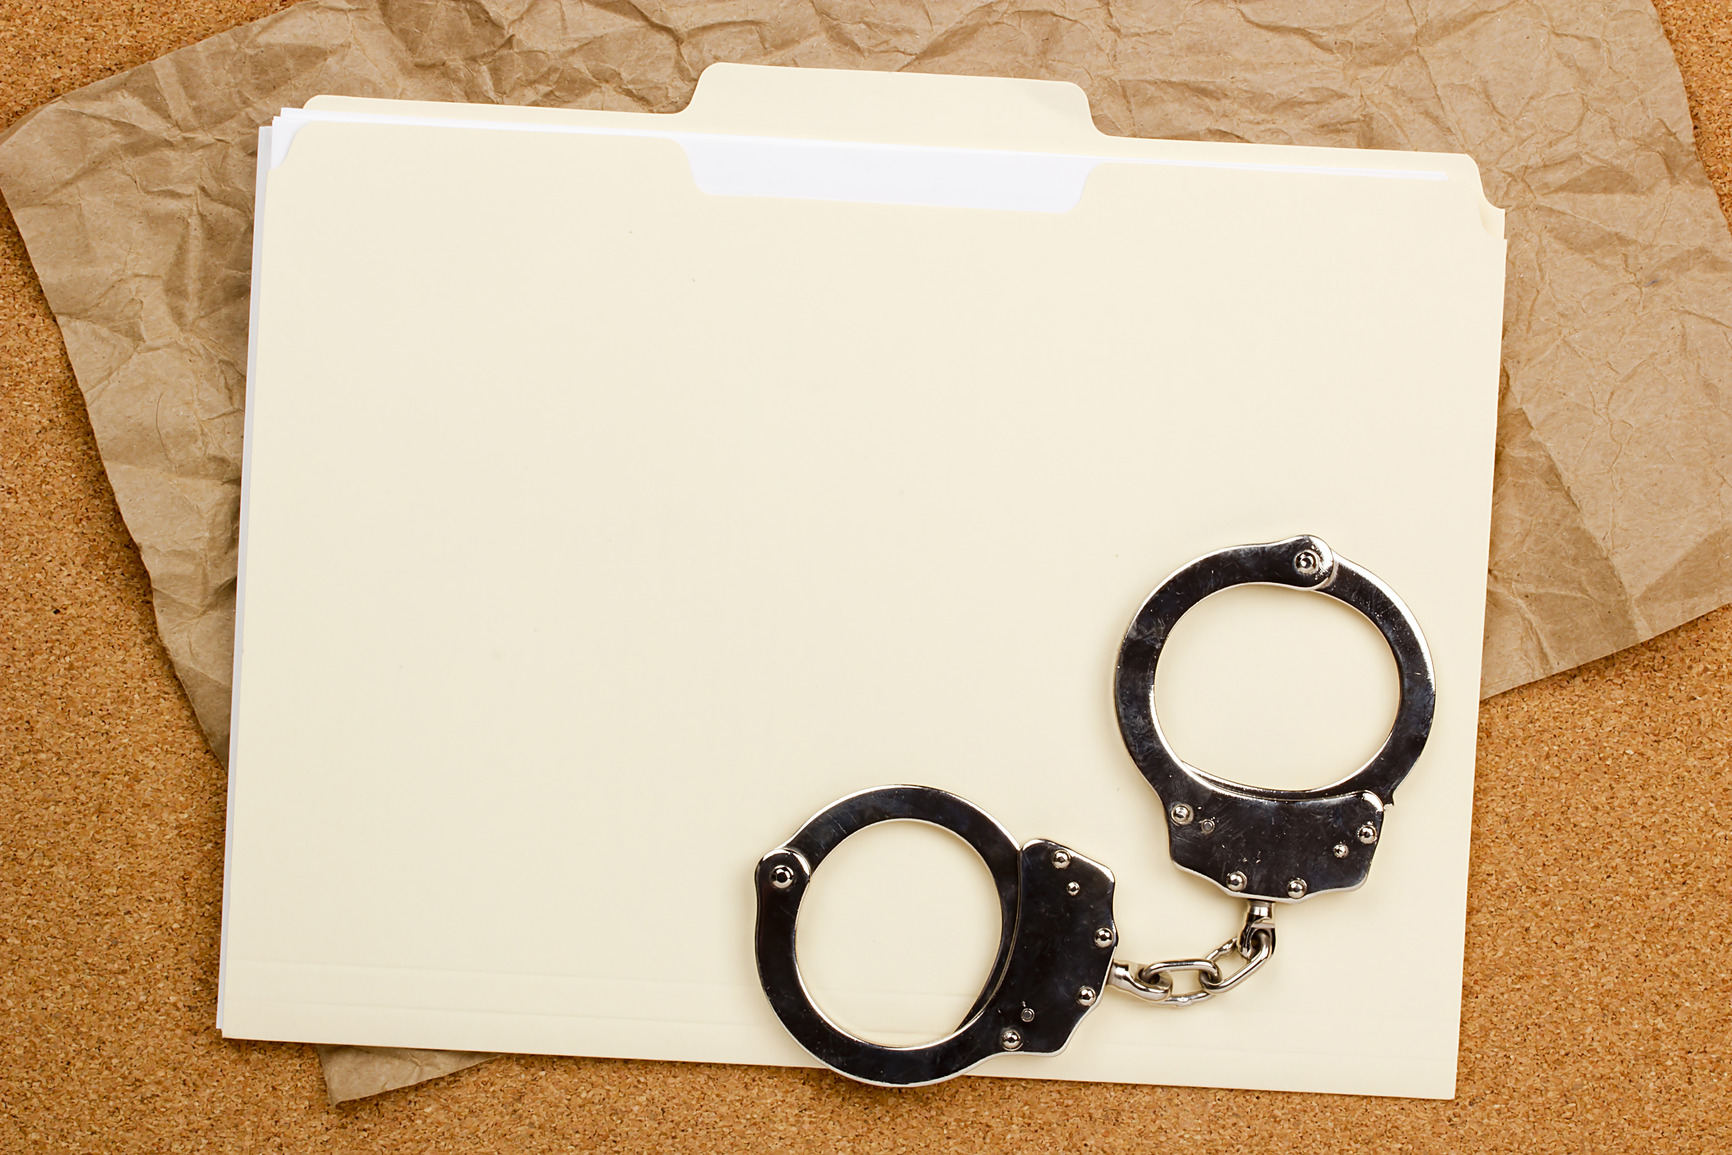 Obtaining A Job When You Have A Criminal Record